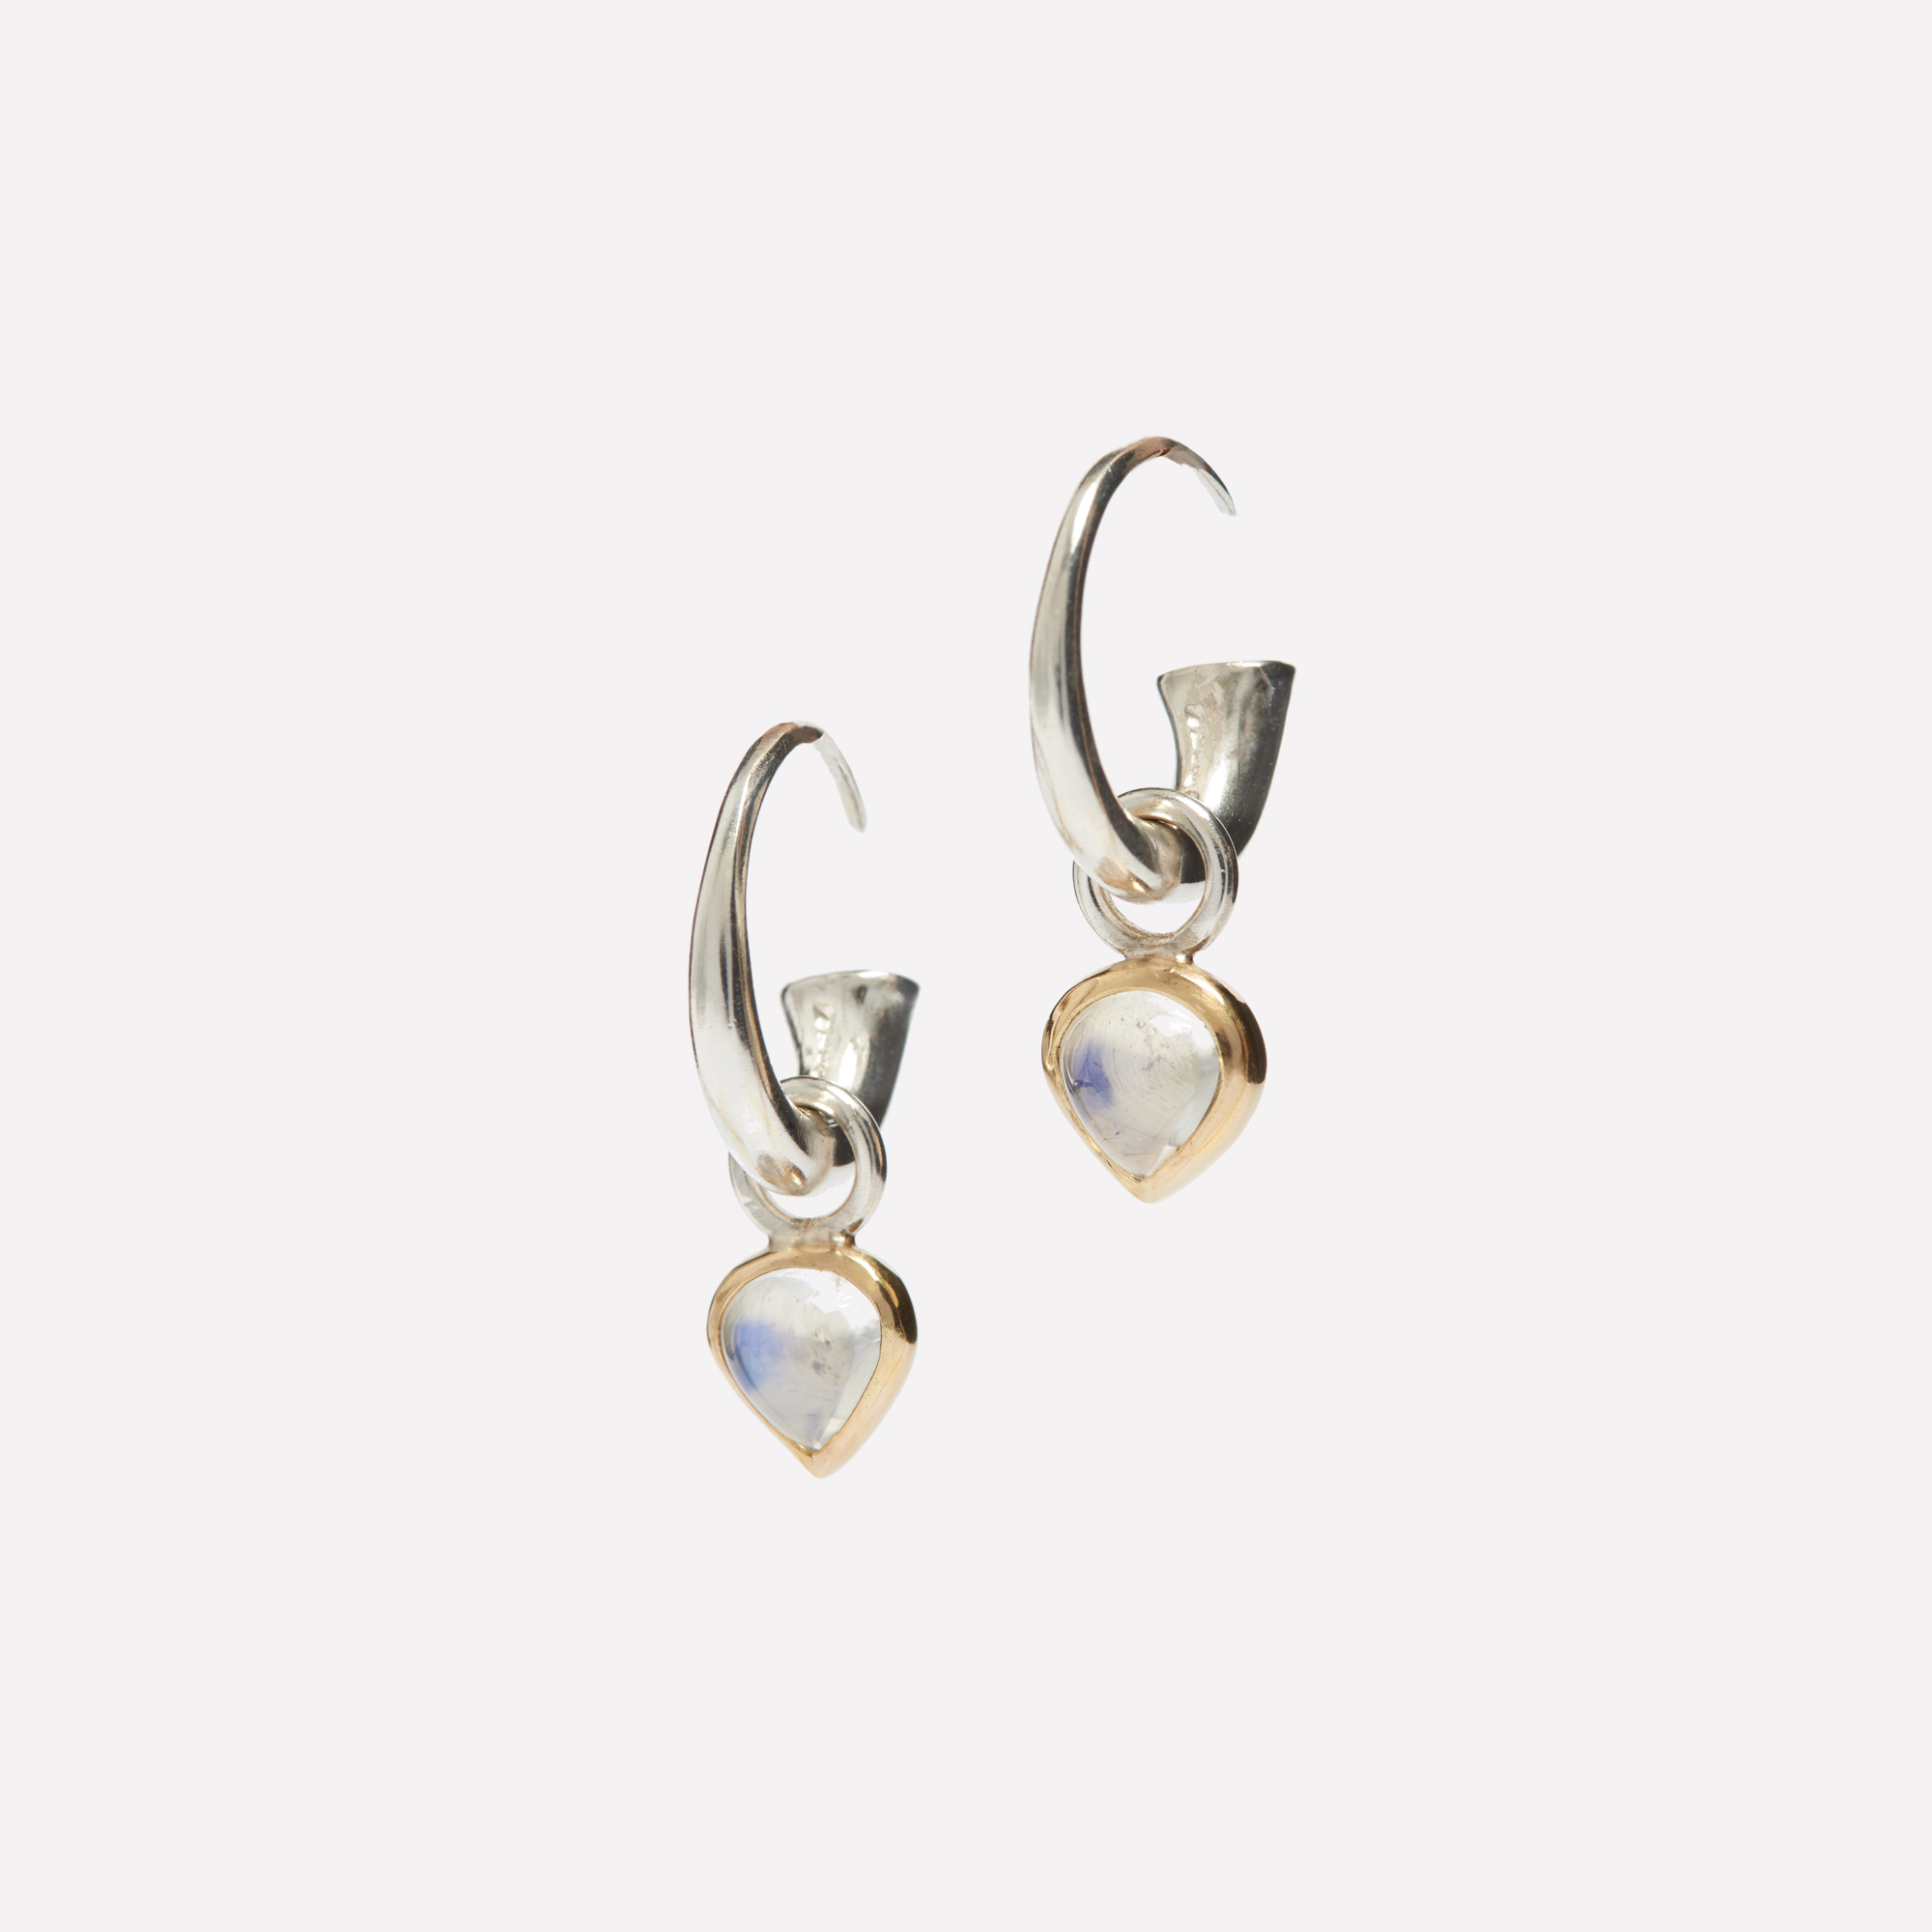 Completely new Moonstone Hoop Earrings | The Garnered | The Garnered XF49